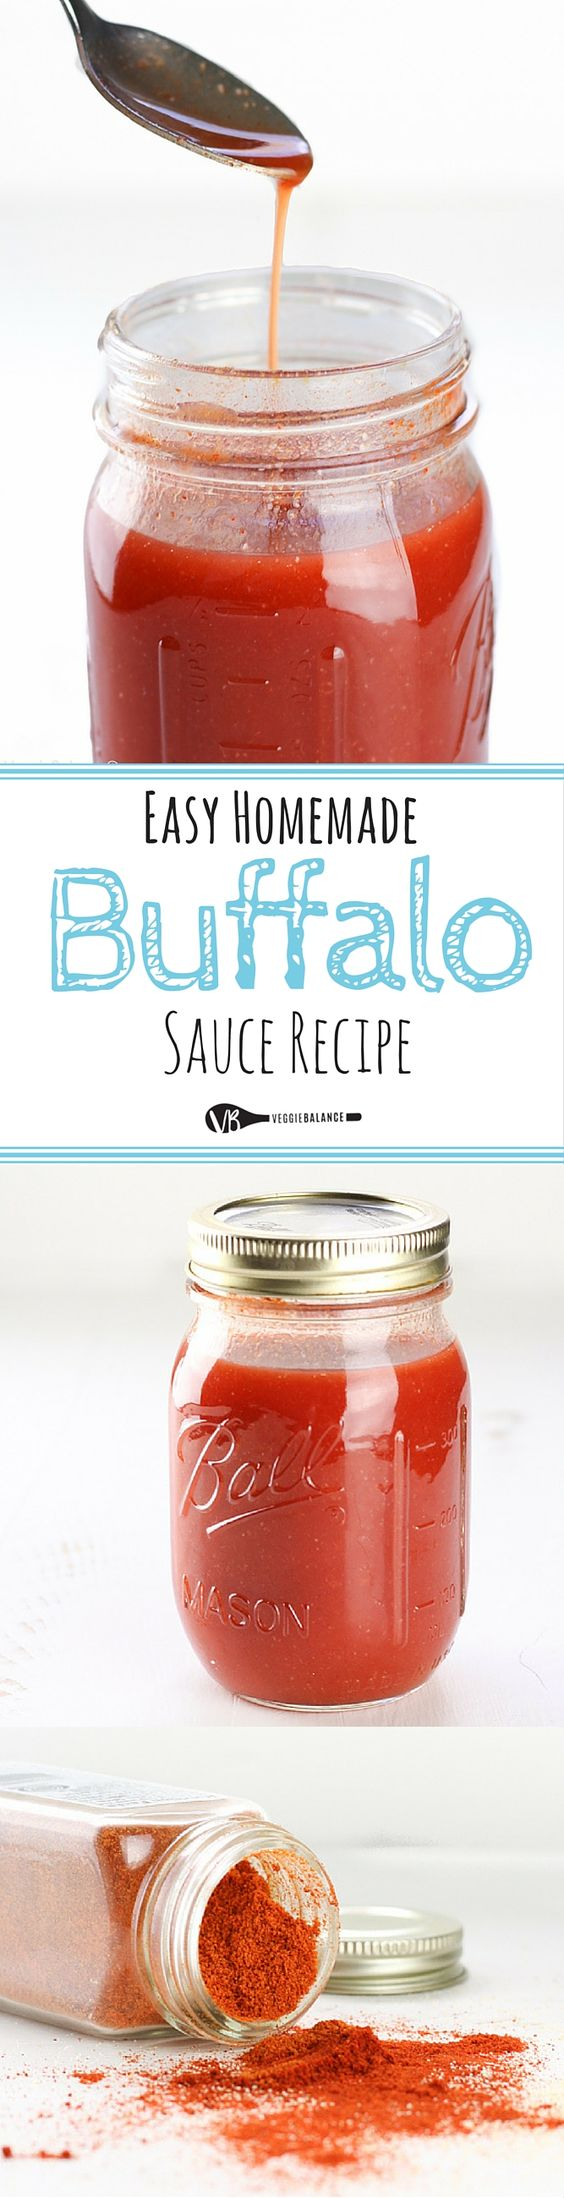 Homemade Buffalo Sauce recipe. How to make it at home with 4 simple ingredients that you probably already have on hand!  In no time you'll have homemade buffalo sauce coating your favorite chicken wings. {Gluten-Free, Dairy-Free, Vegetarian & Vegan}